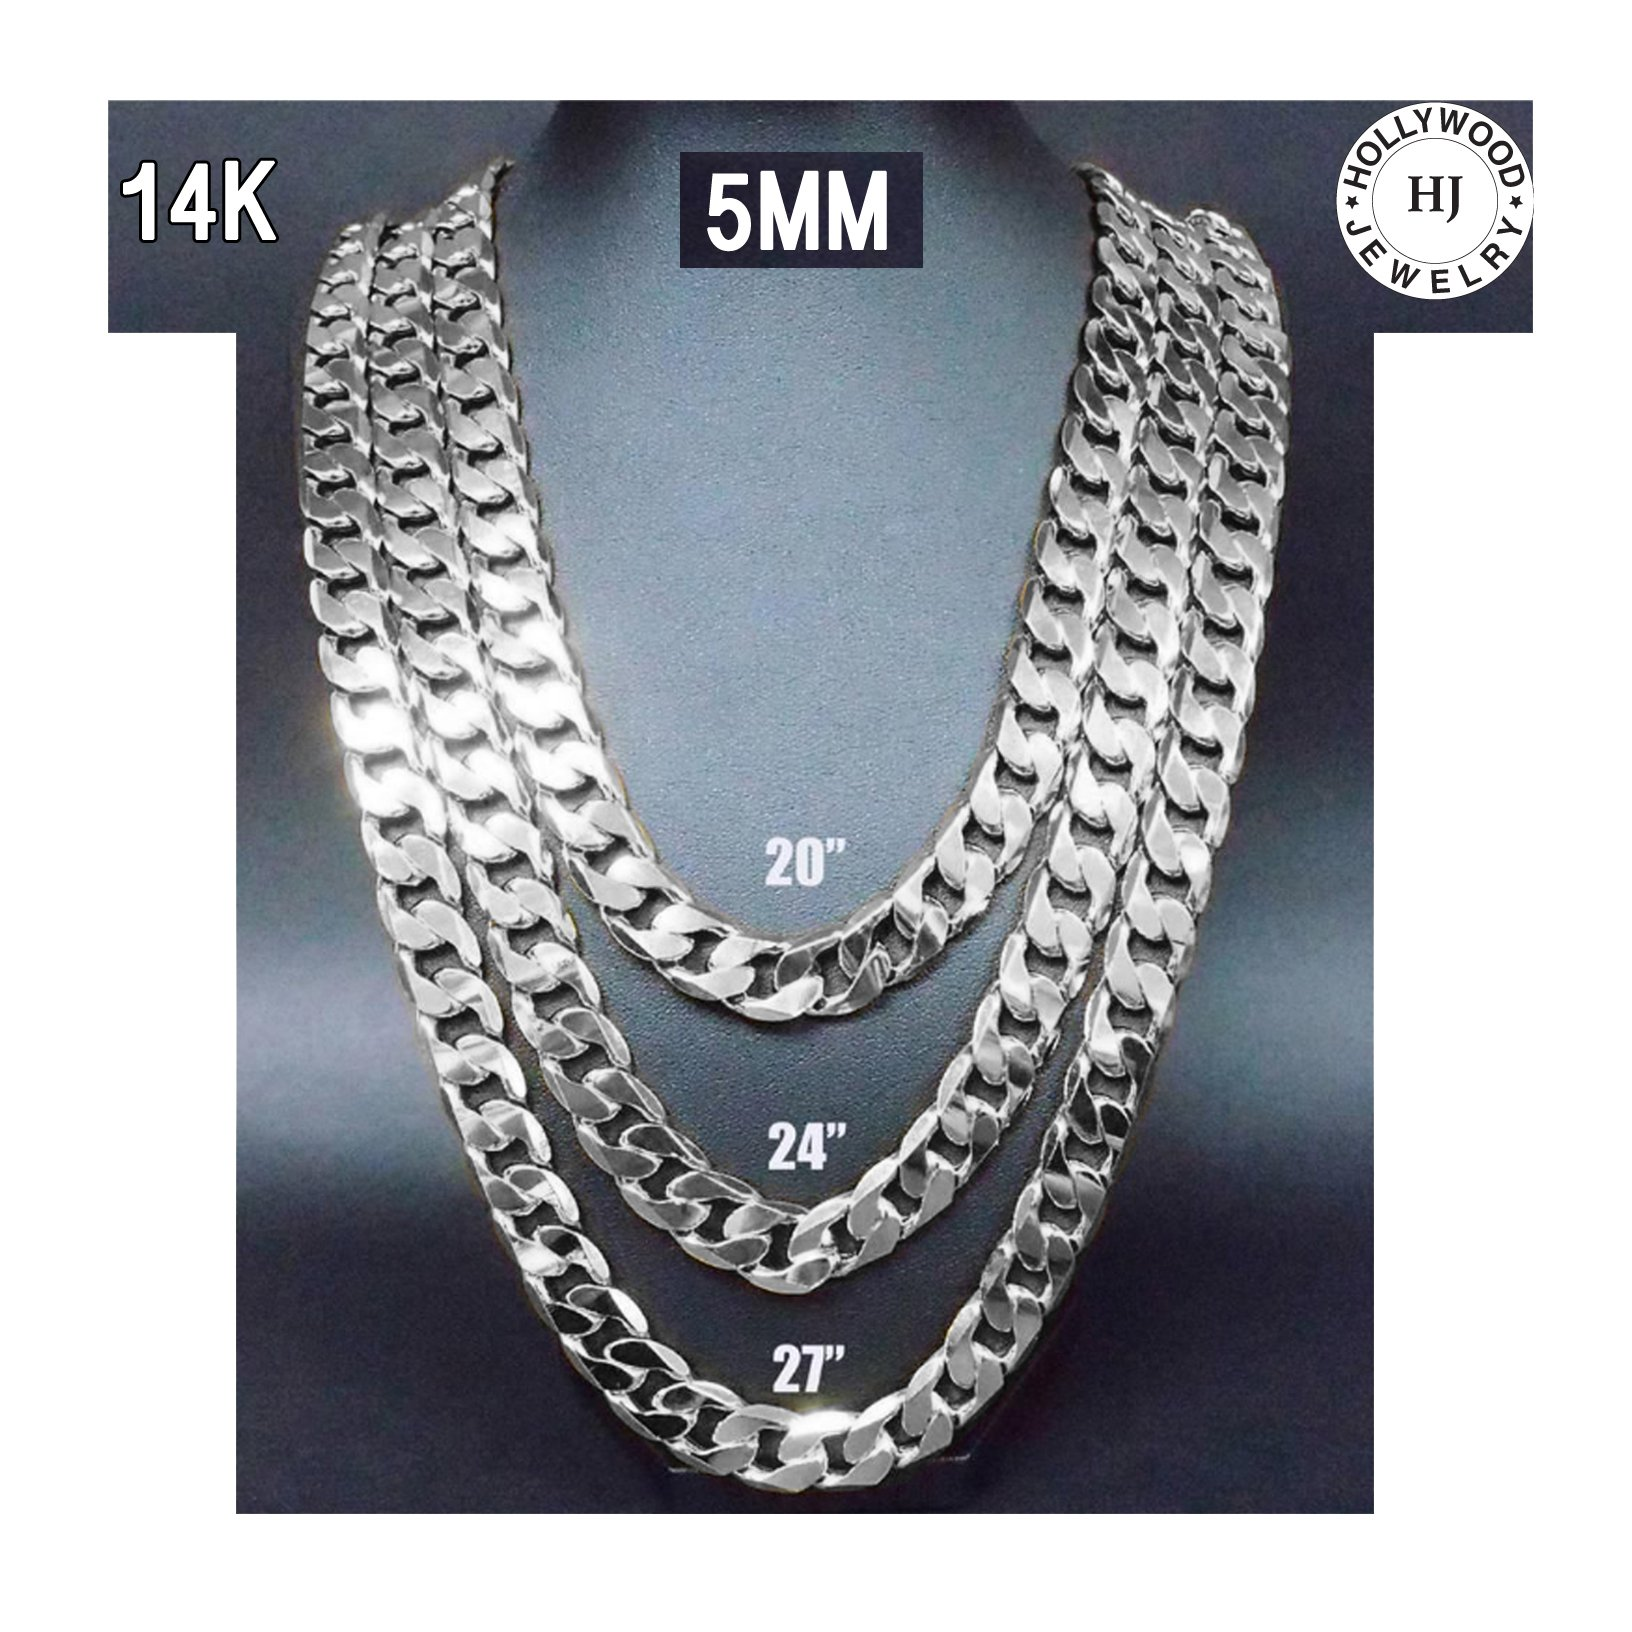 Hollywood Jewelry Gold chain necklace 5mm 14K White Gold Diamond cut Smooth Cuban Link with a Warranty USA made! (22)